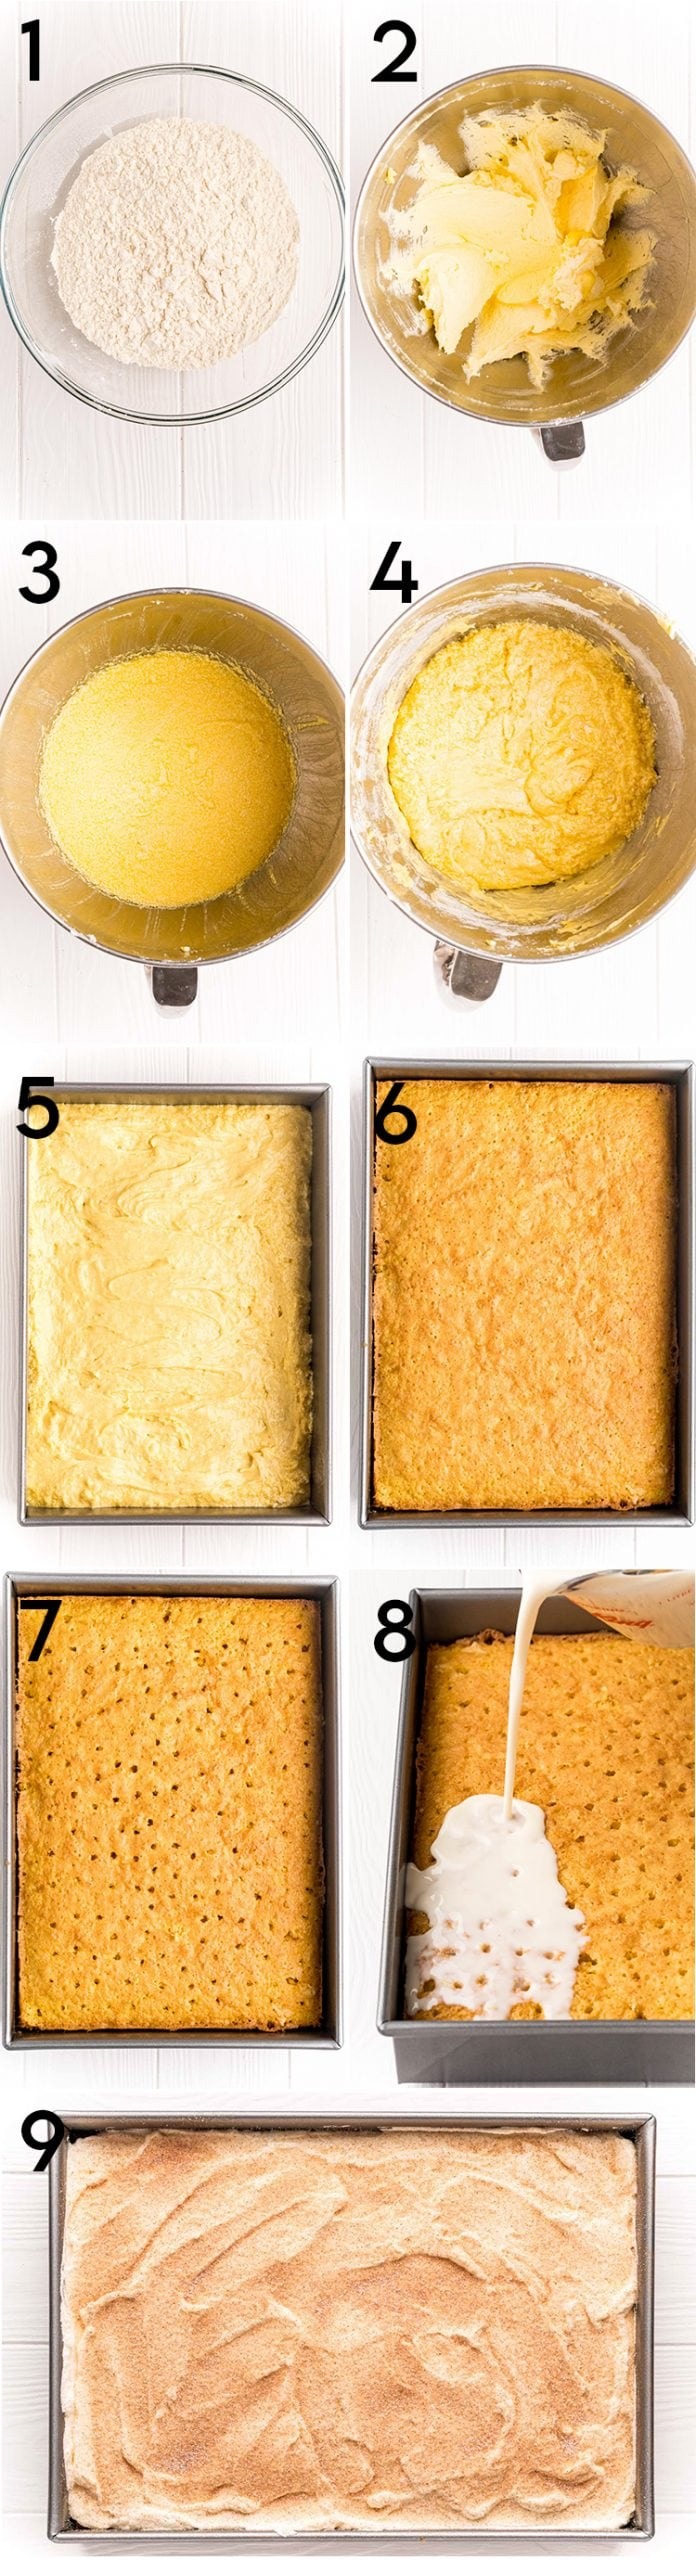 A collage of 9 step by step photos showing how to make tres leches cake, sifting the flour, creaming the butter, adding the eggs, adding the flour, pouring the batter into the pan, baking the cake, poking the top of the cake, pouring the milk over the top, adding the whipped cream.